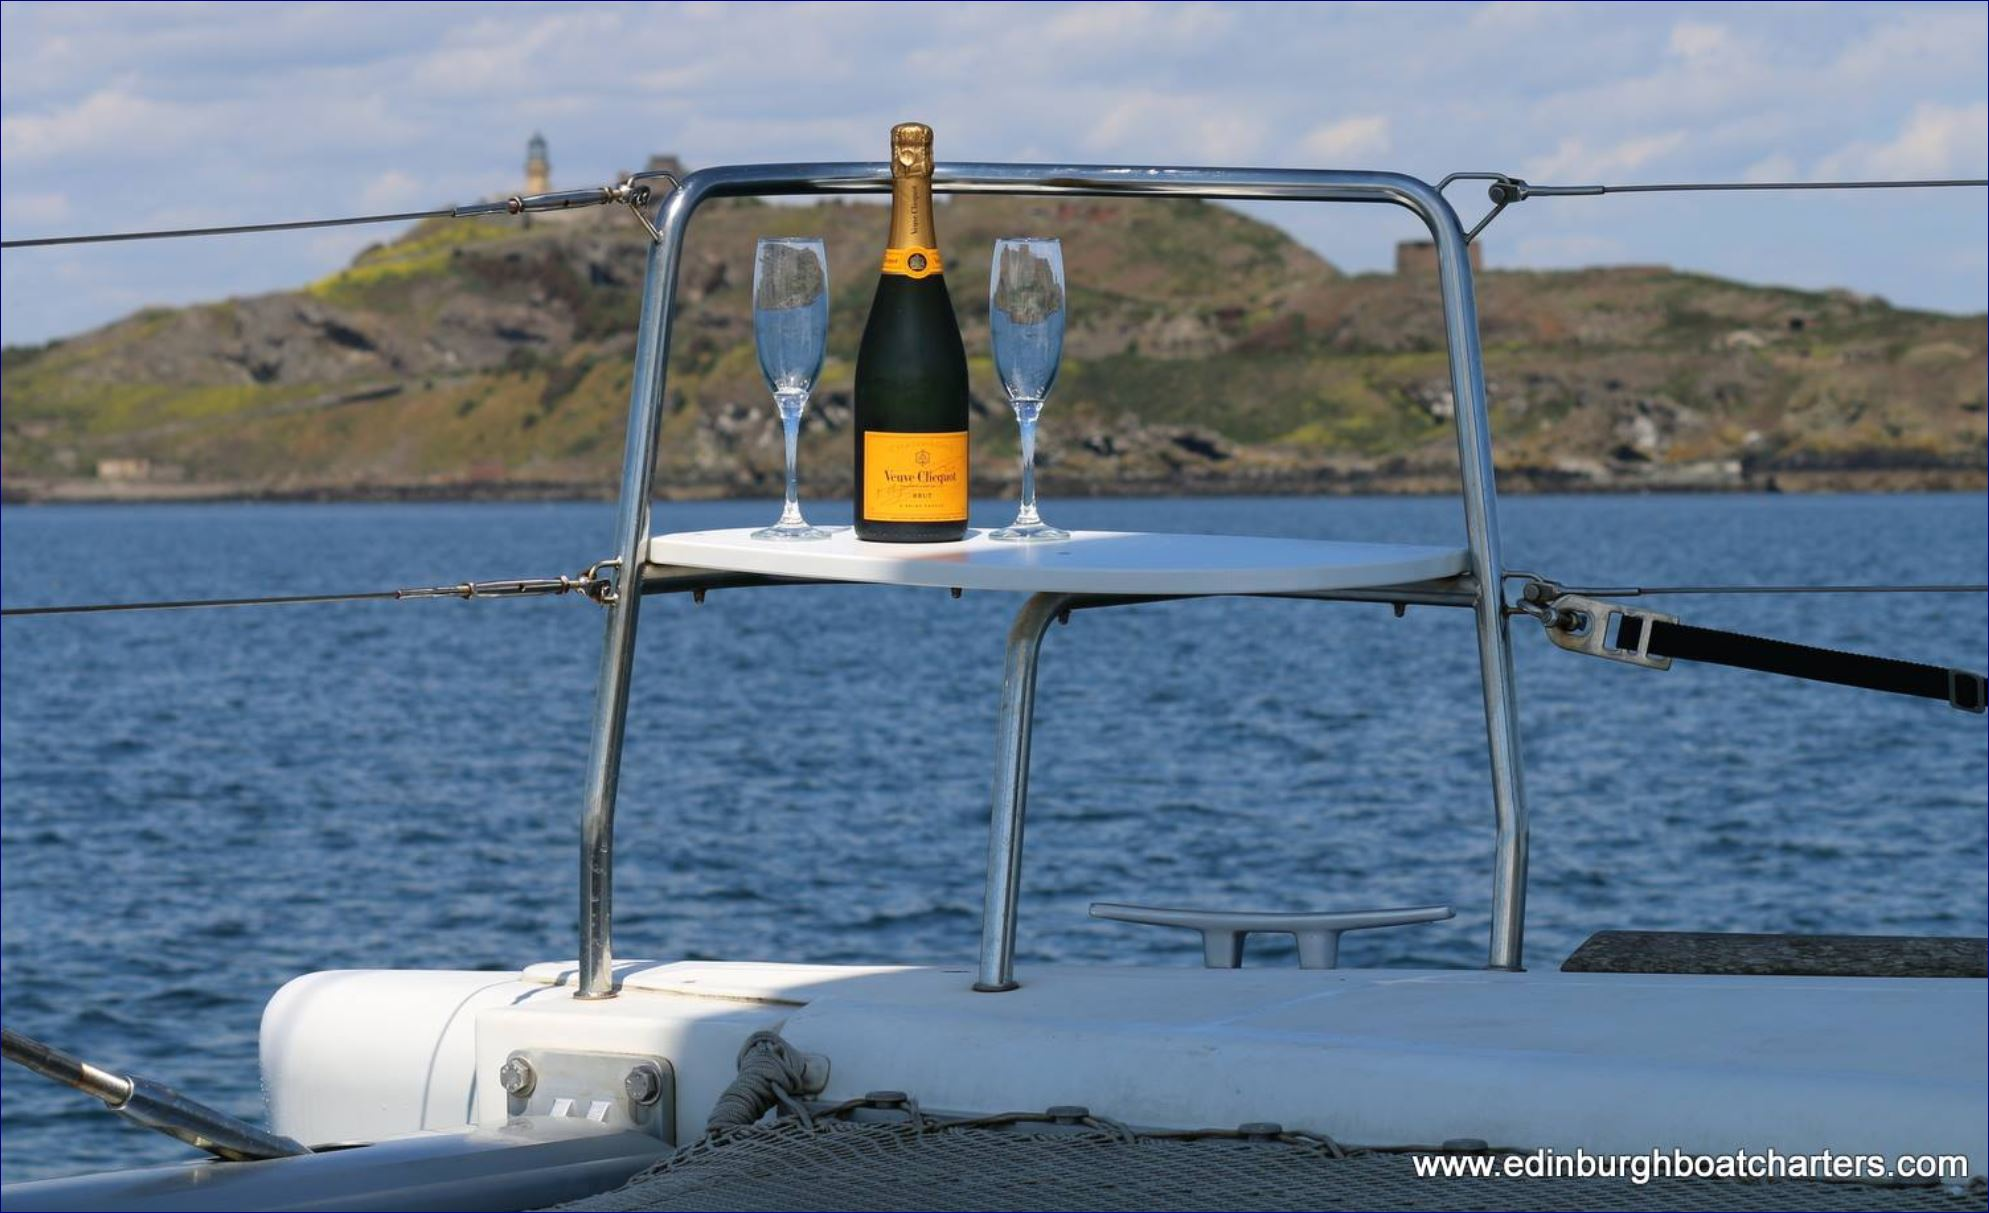 champagne and glasses on a boat